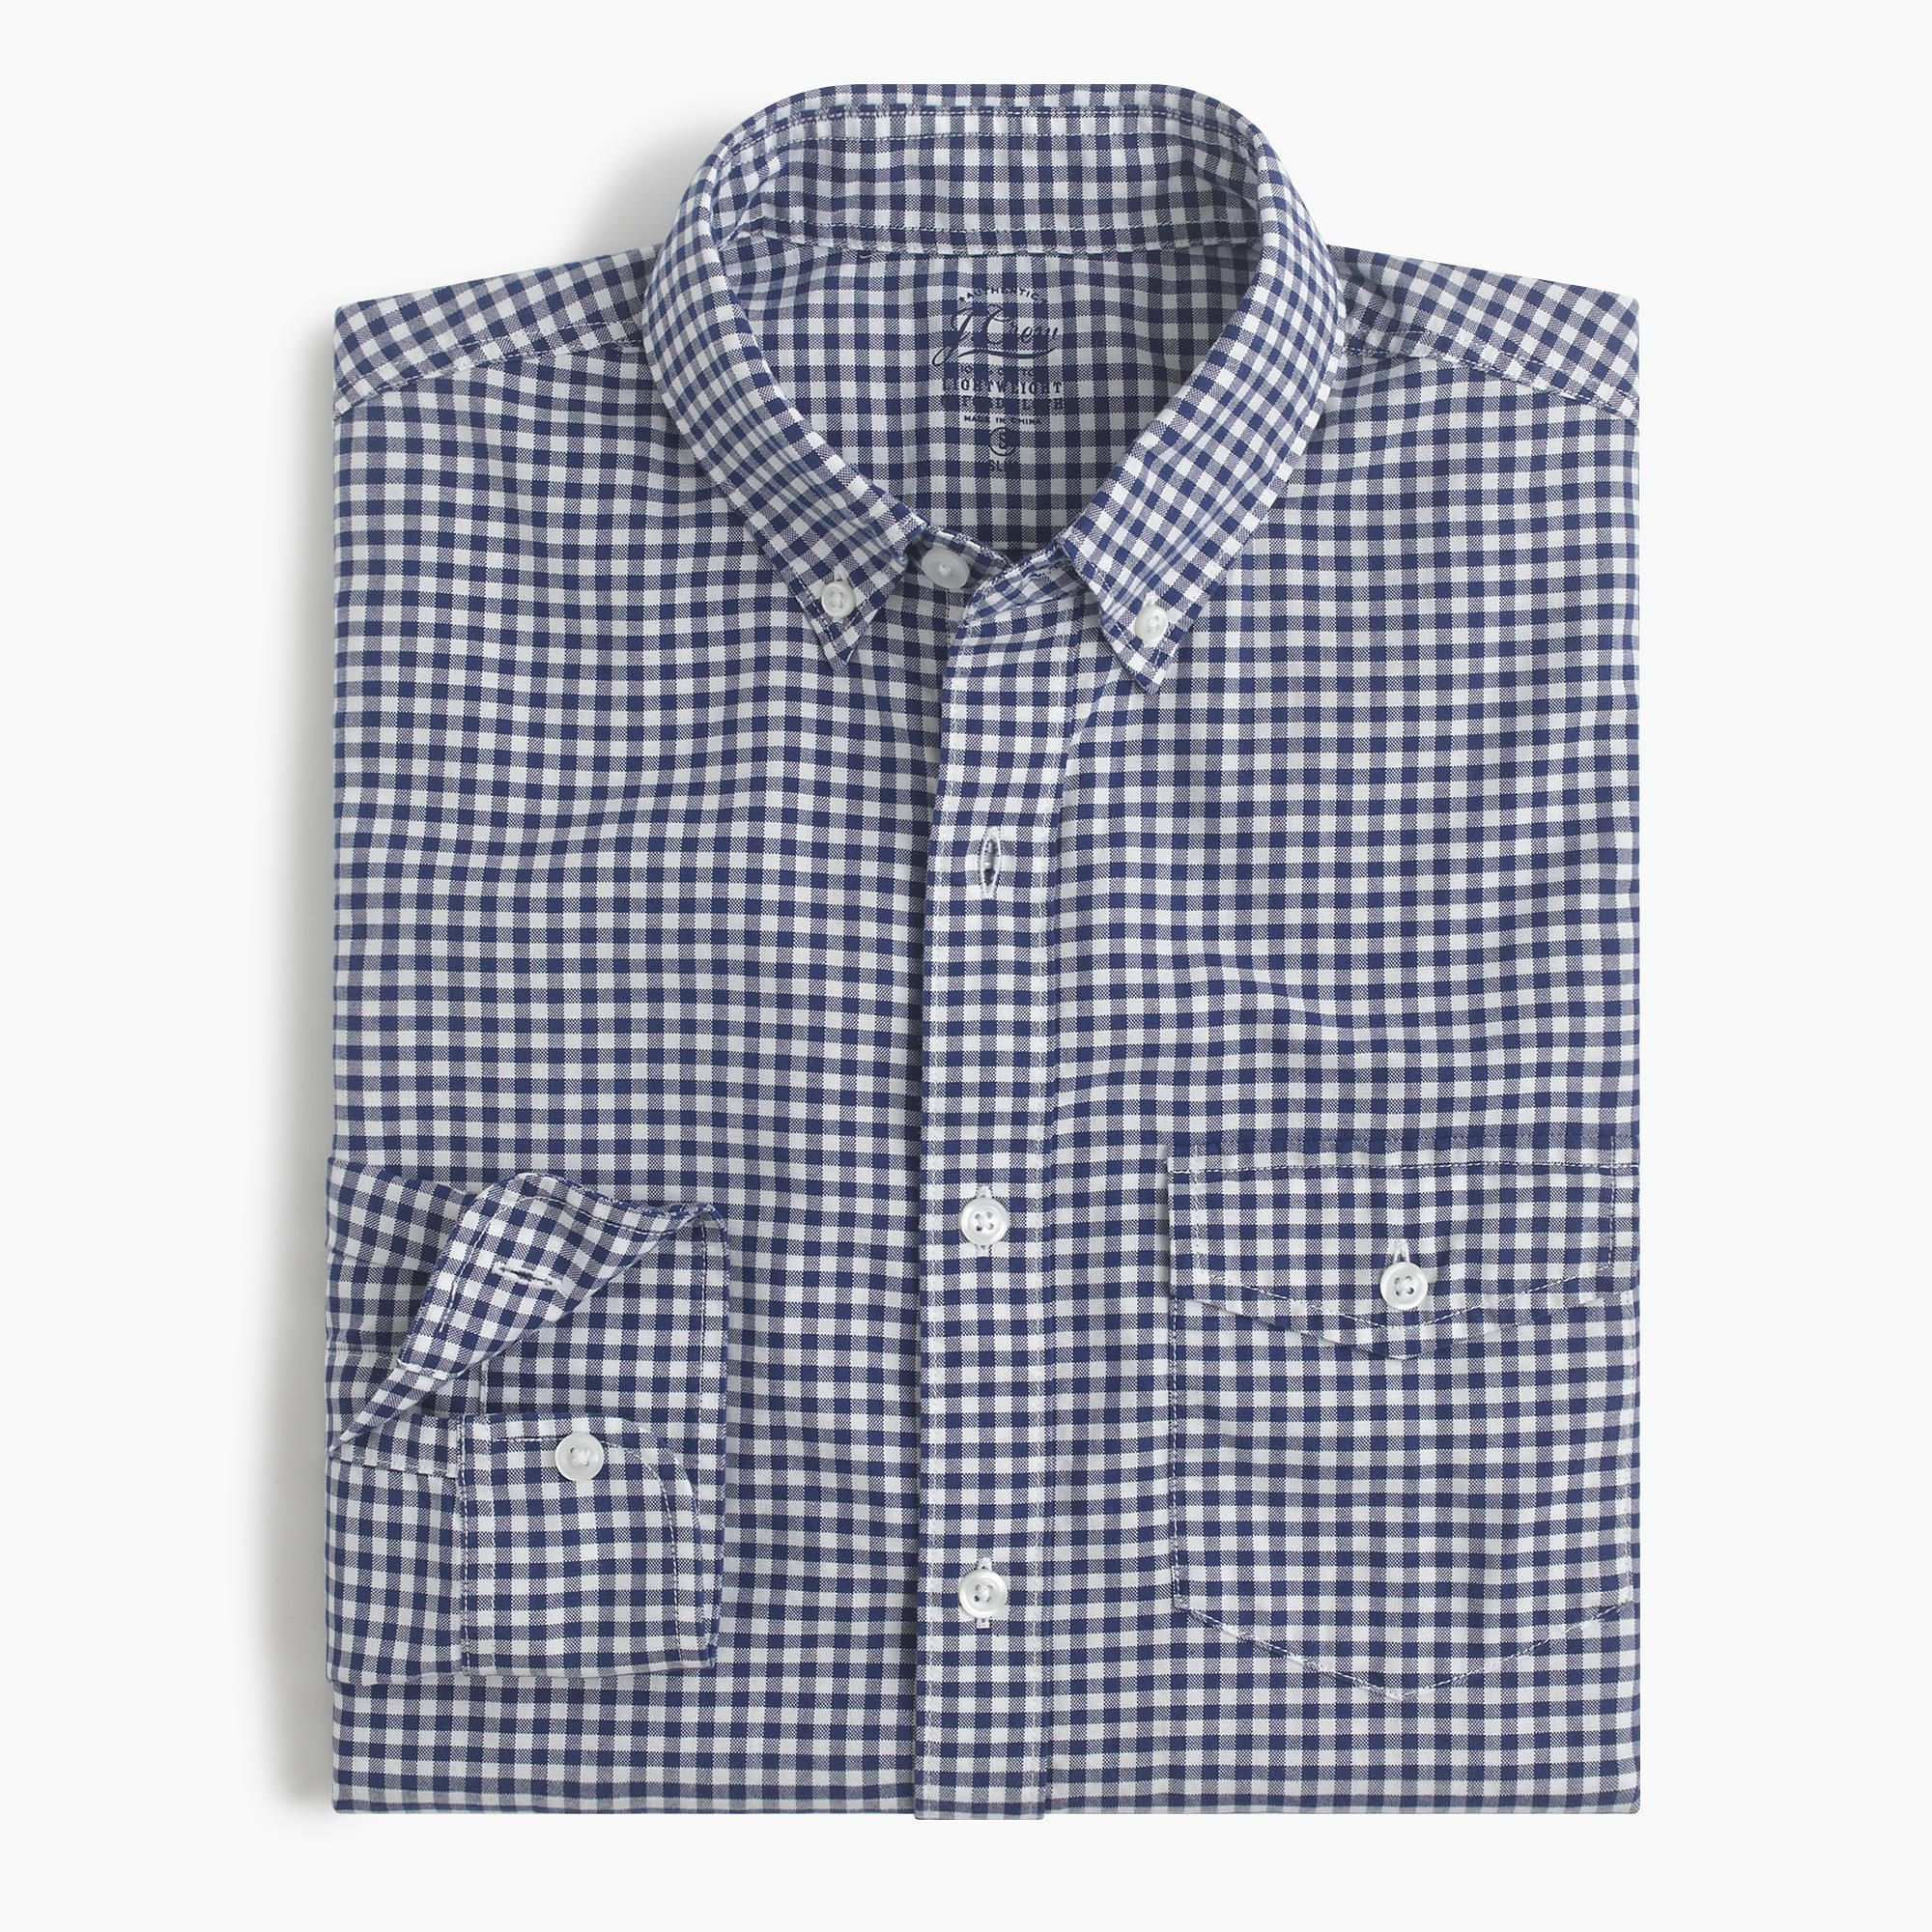 Slim lightweight oxford shirt in summertime gingham : oxford | J.Crew